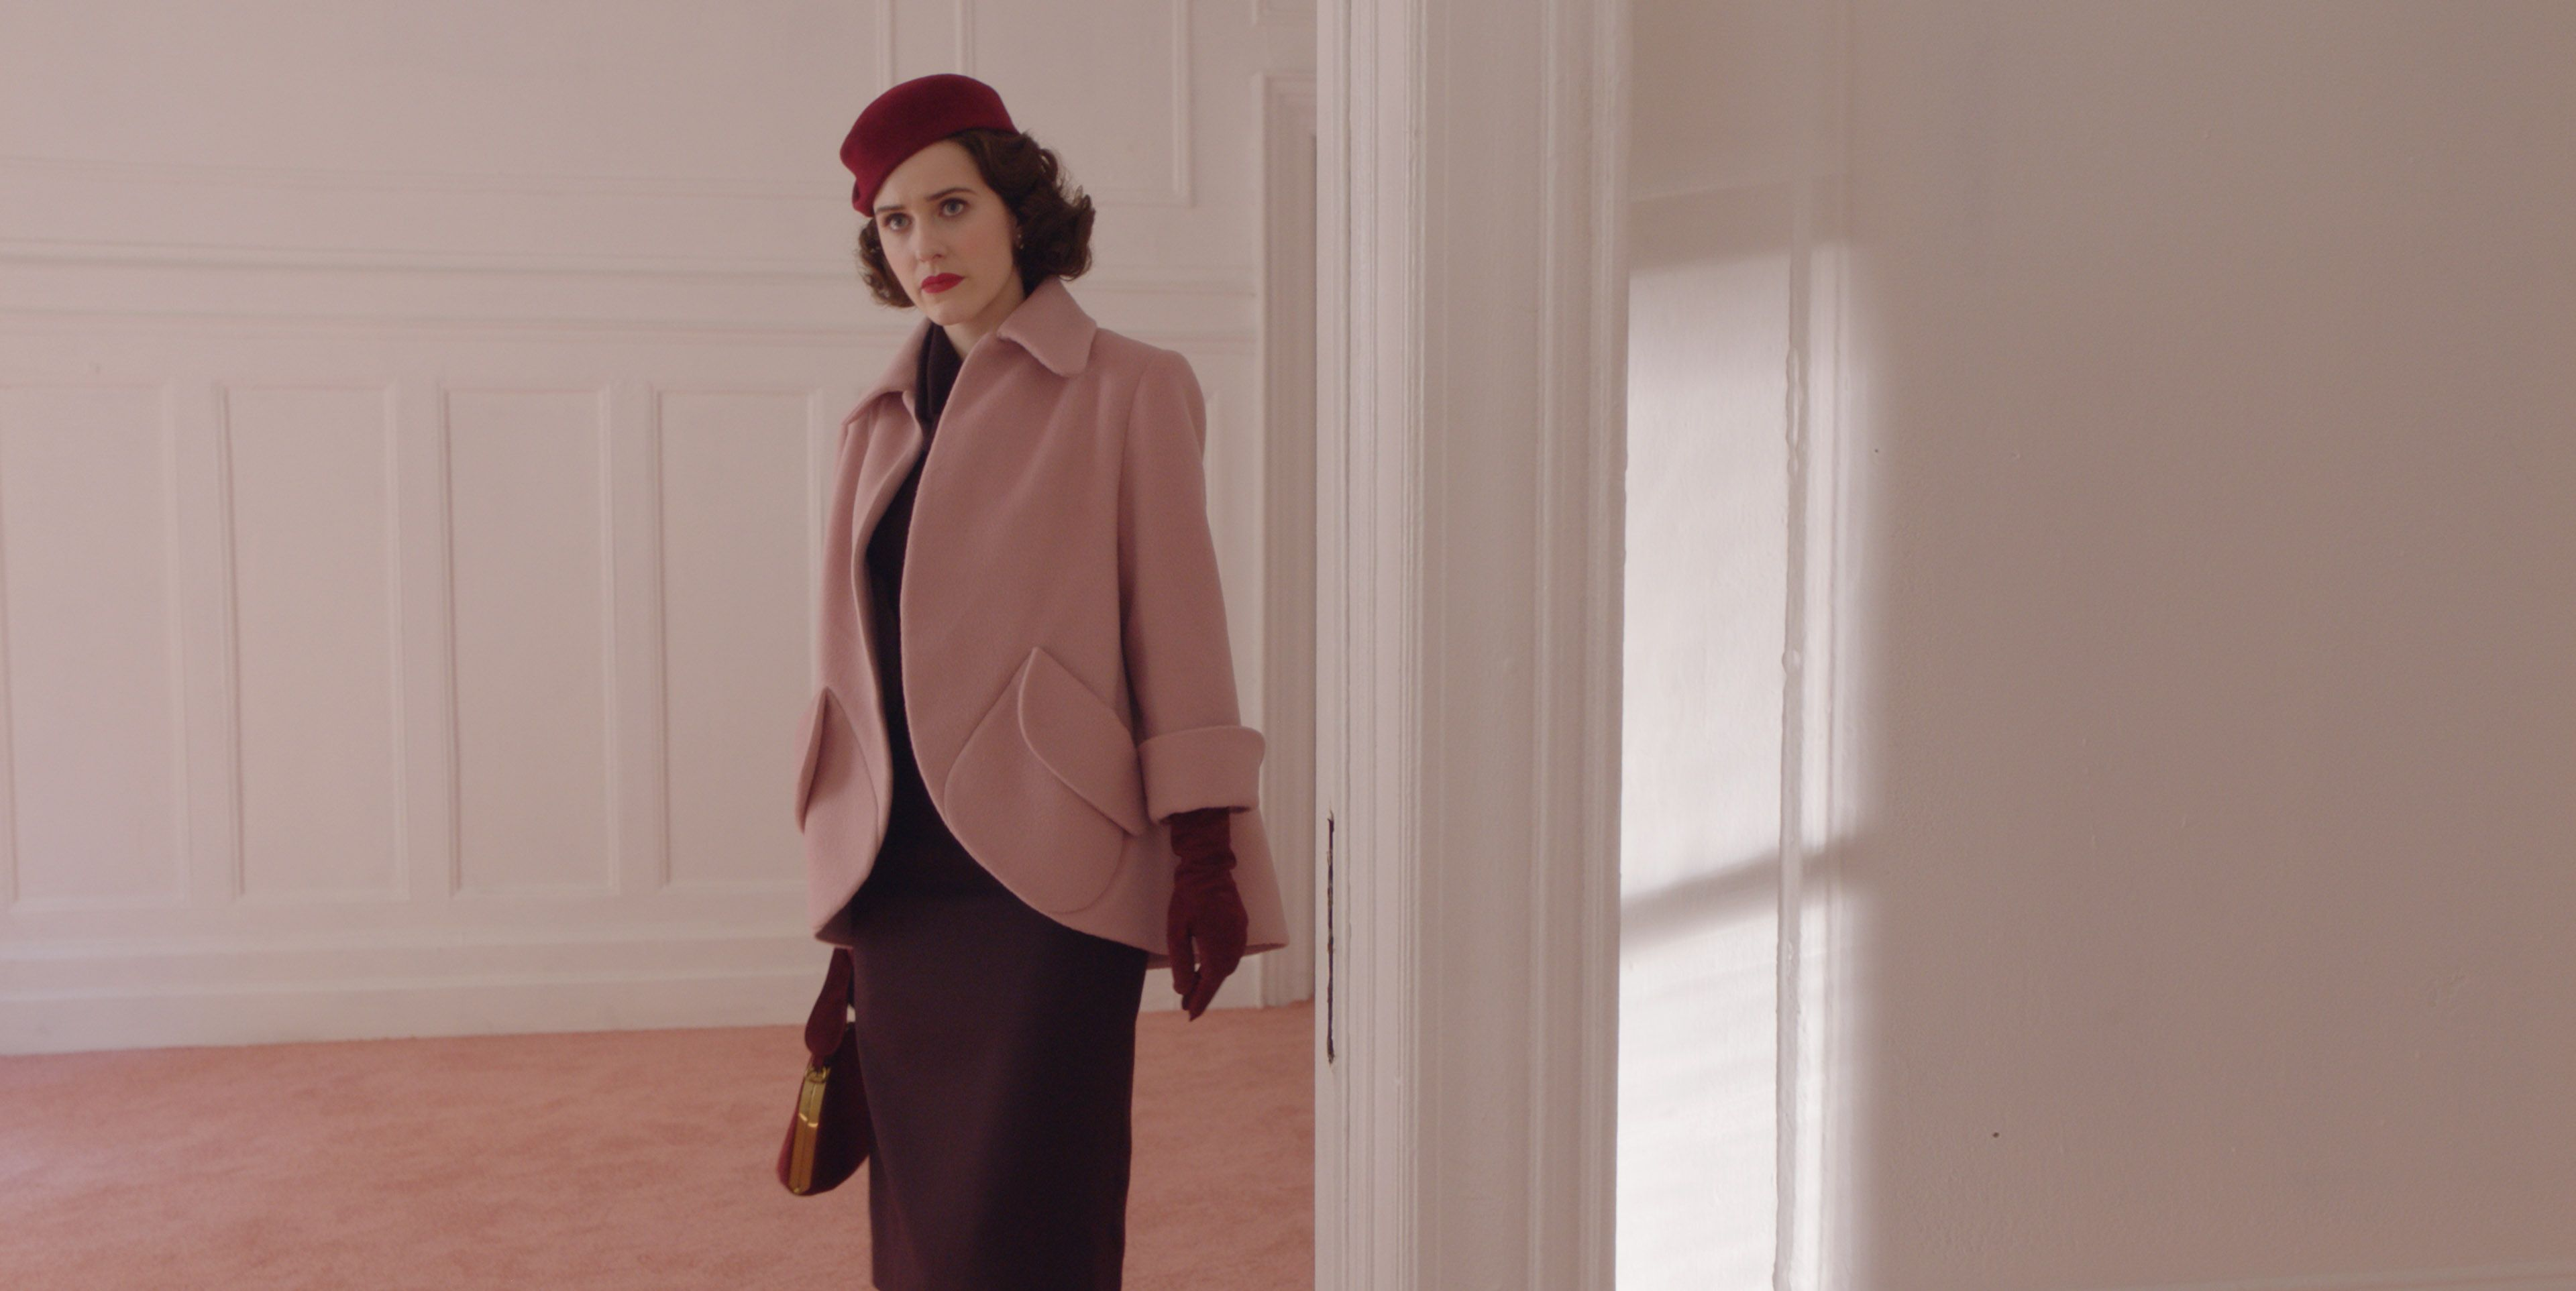 rachel brosnahan in the marvelous mrs maisel season 2